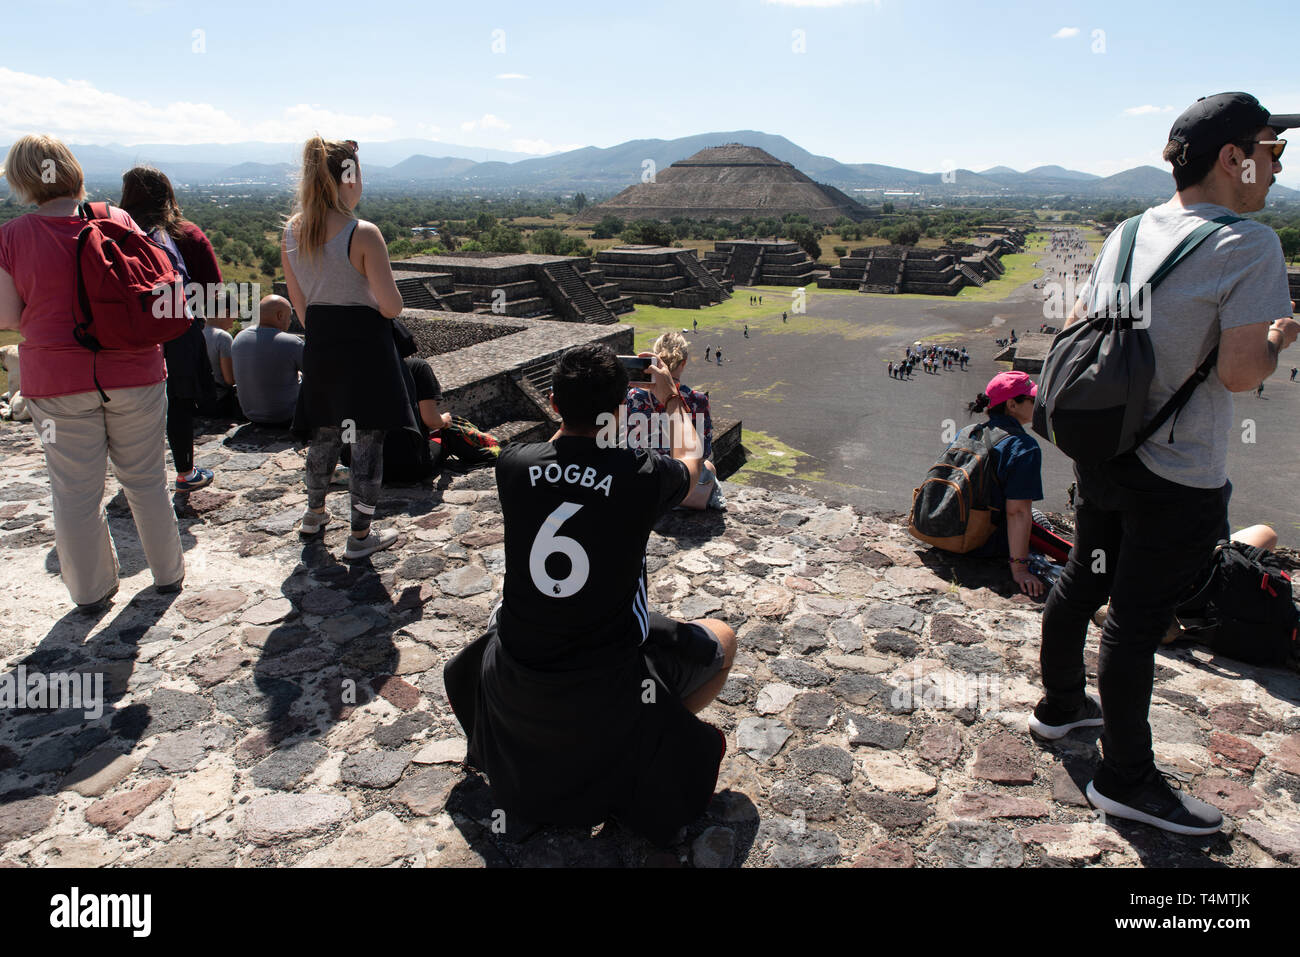 Touristen gehen auf der Mondpyramide in Teotihuacan. / Tourists going up and down the pyramid of the moon at Teotihuacan, a UNESCO site since 1987. - Stock Image